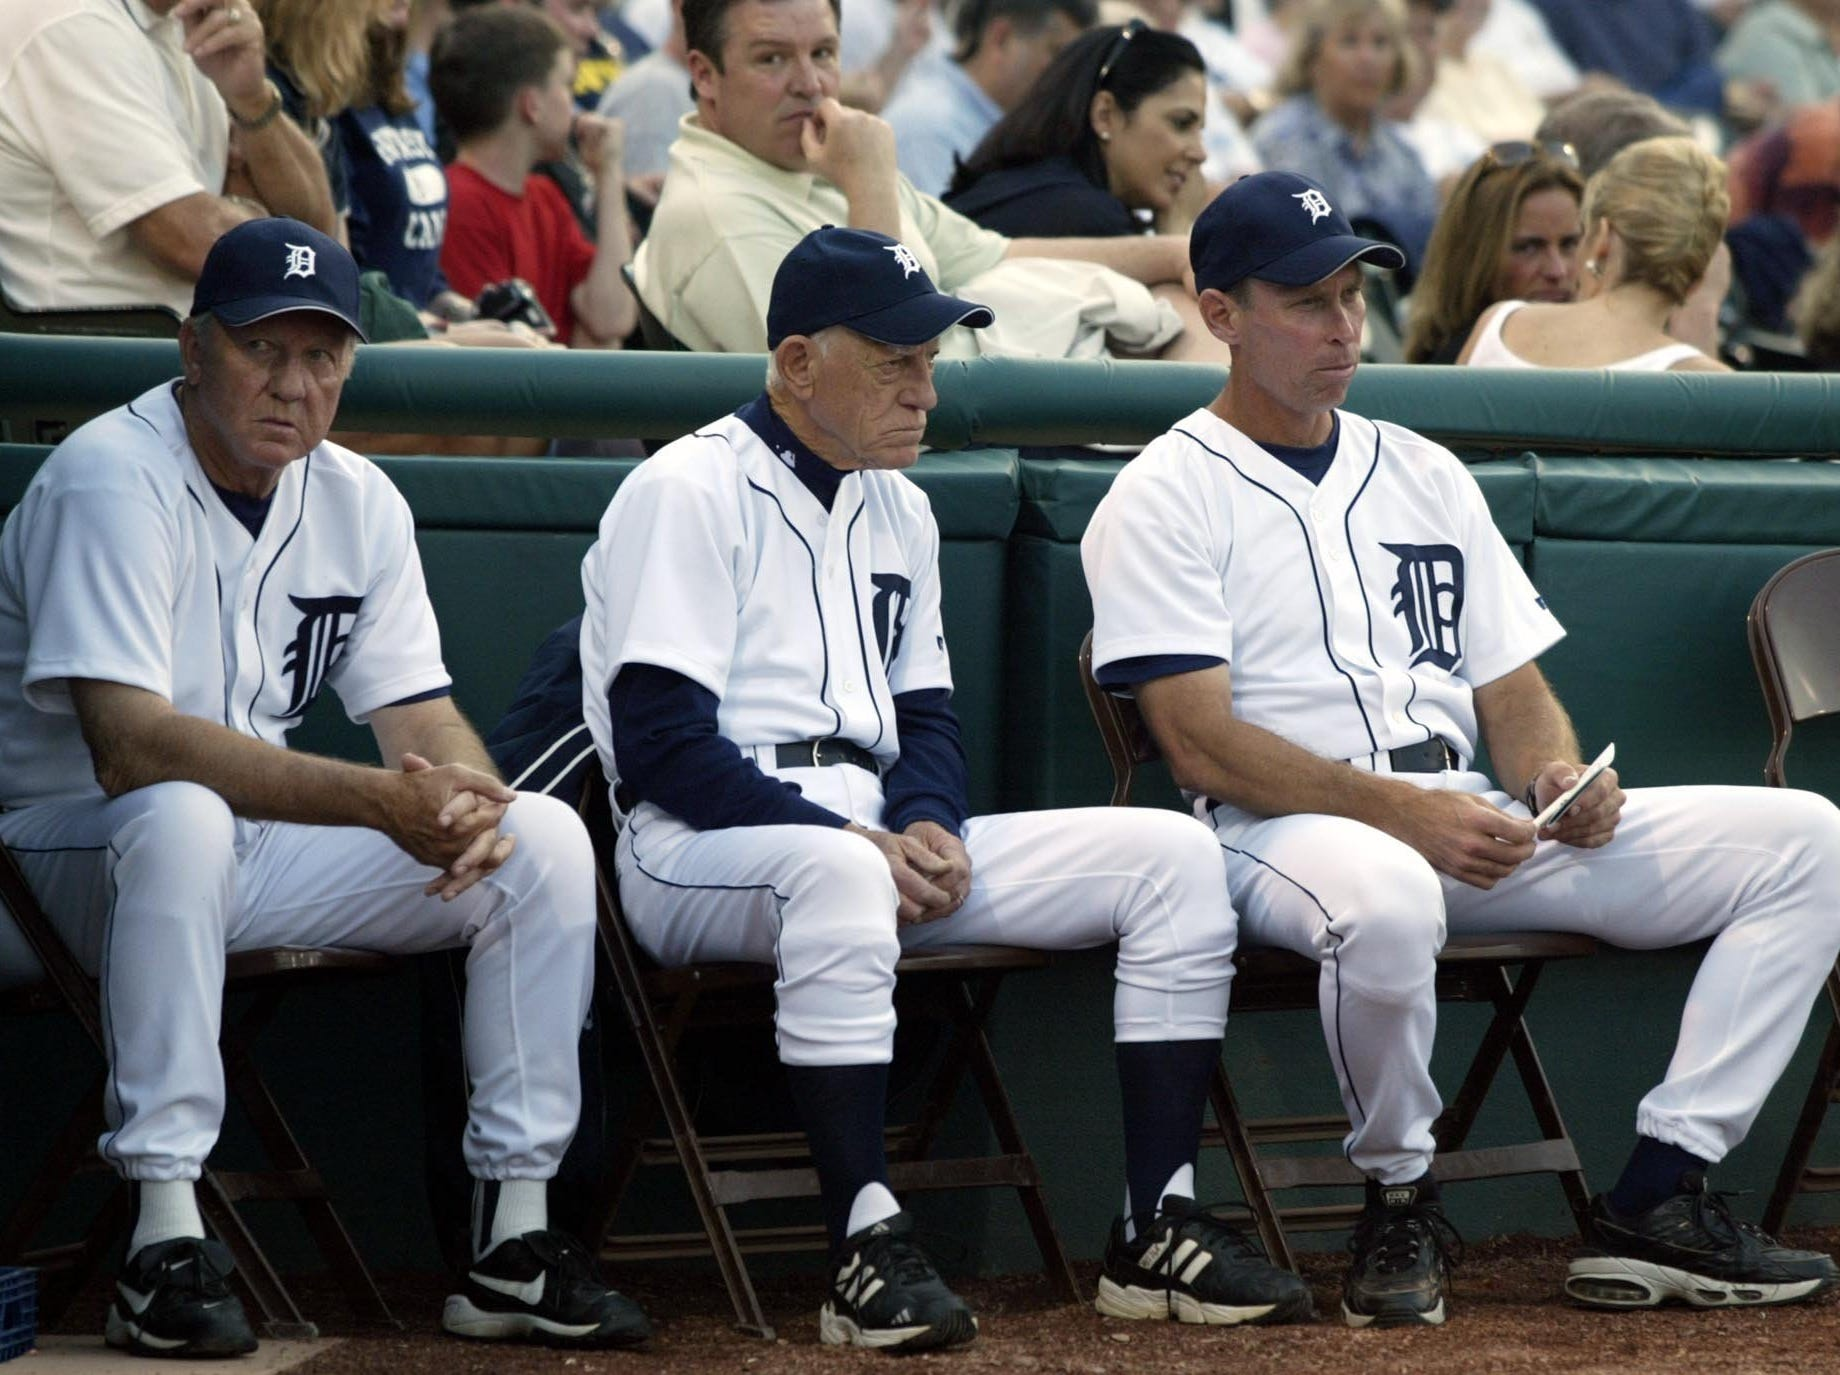 Former Detroit Tigers player Al Kaline, left, former manager Sparky Anderson, center, and current manager Alan Trammell, right, watch the start of the Tigers' game against the Montreal Expos in Lakeland, Fla., Friday, March 14, 2003.